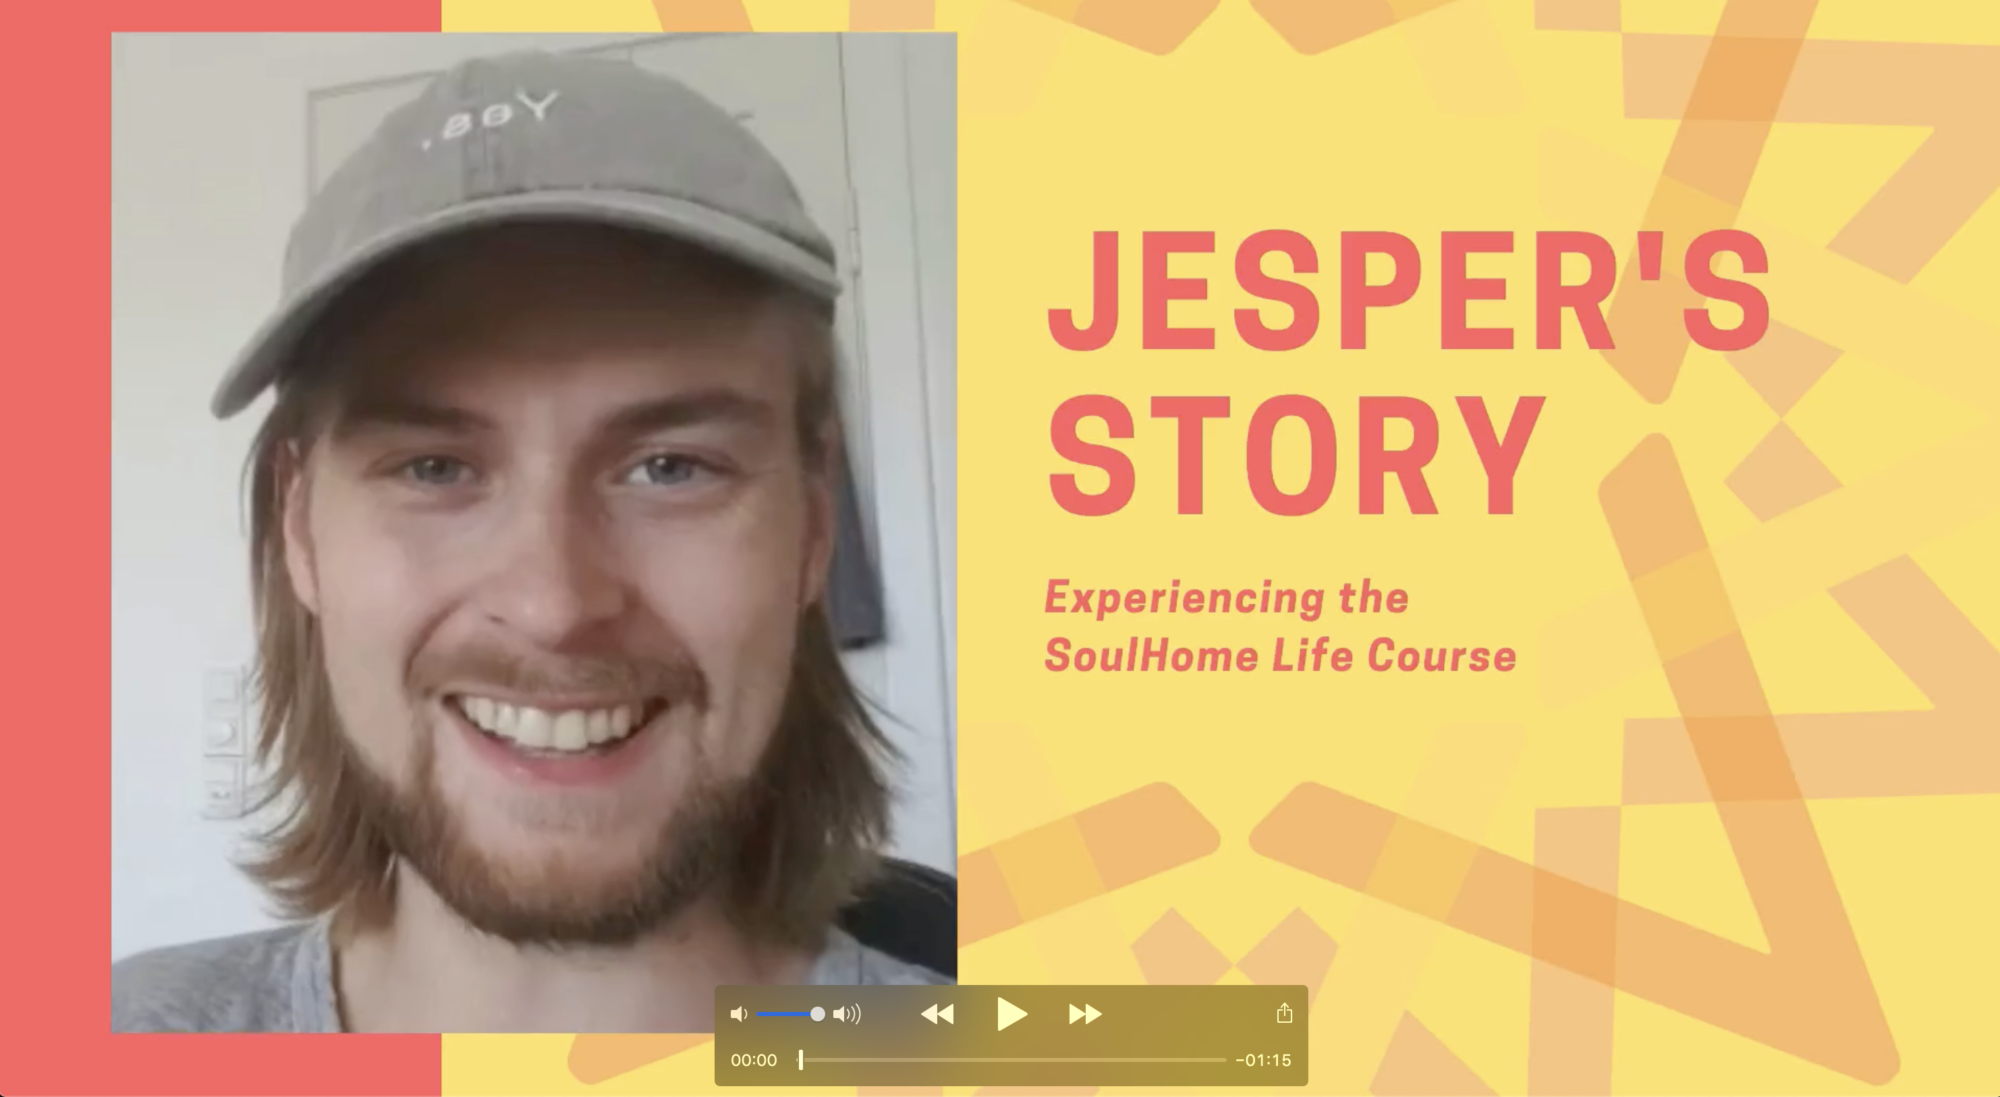 Jesper-SoulHome Course